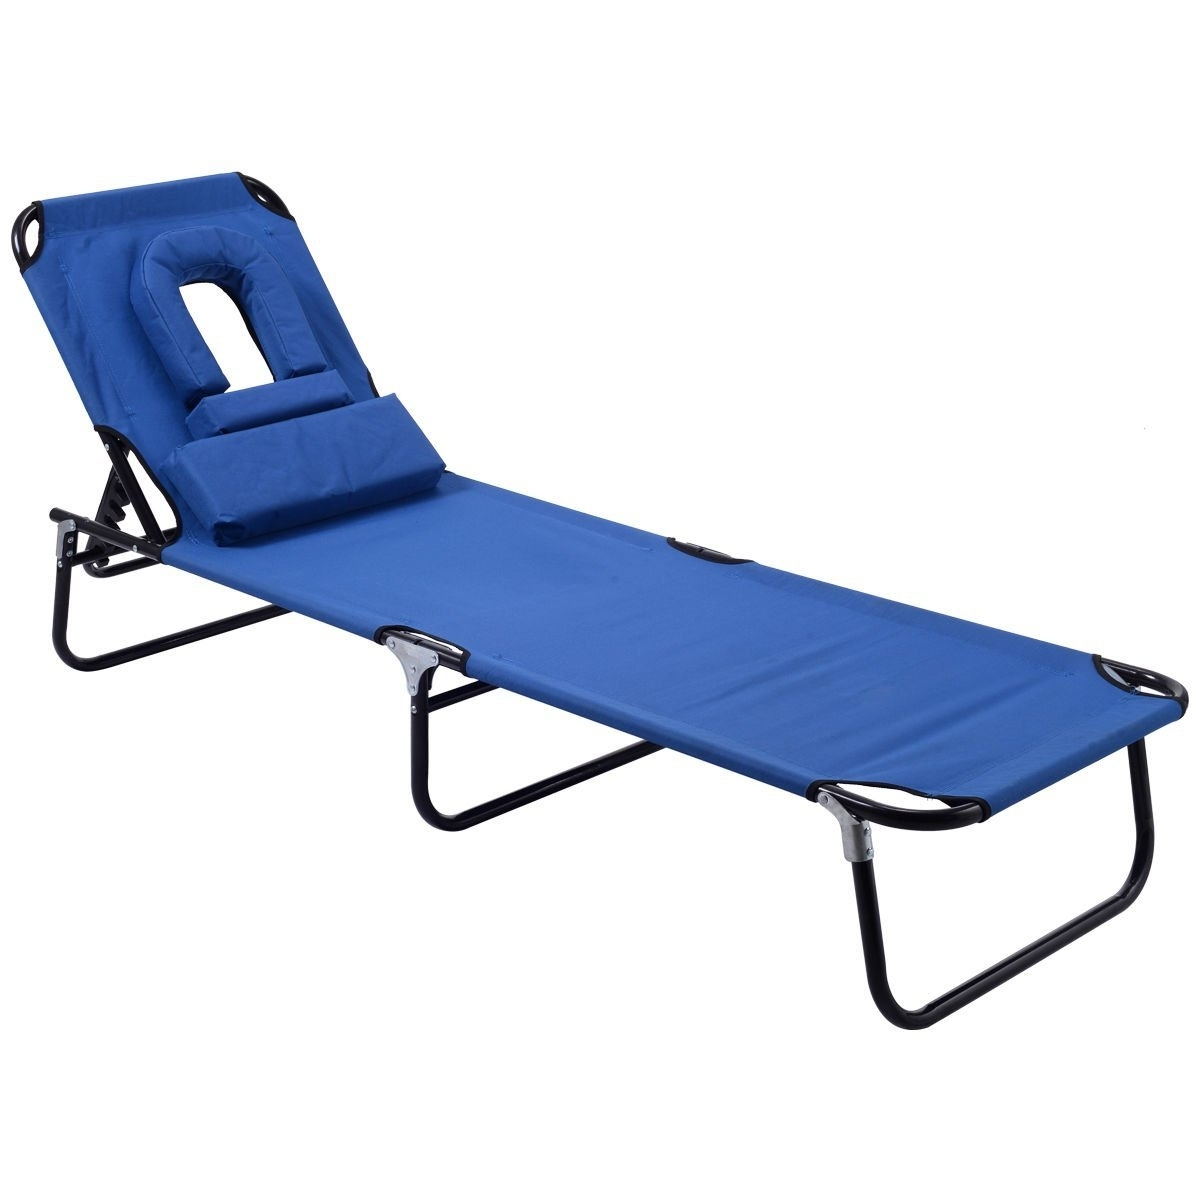 Well Known Chaise Lounge Beach Chairs With Regard To Amazon: Goplus Folding Chaise Lounge Chair Bed Outdoor Patio (View 5 of 15)